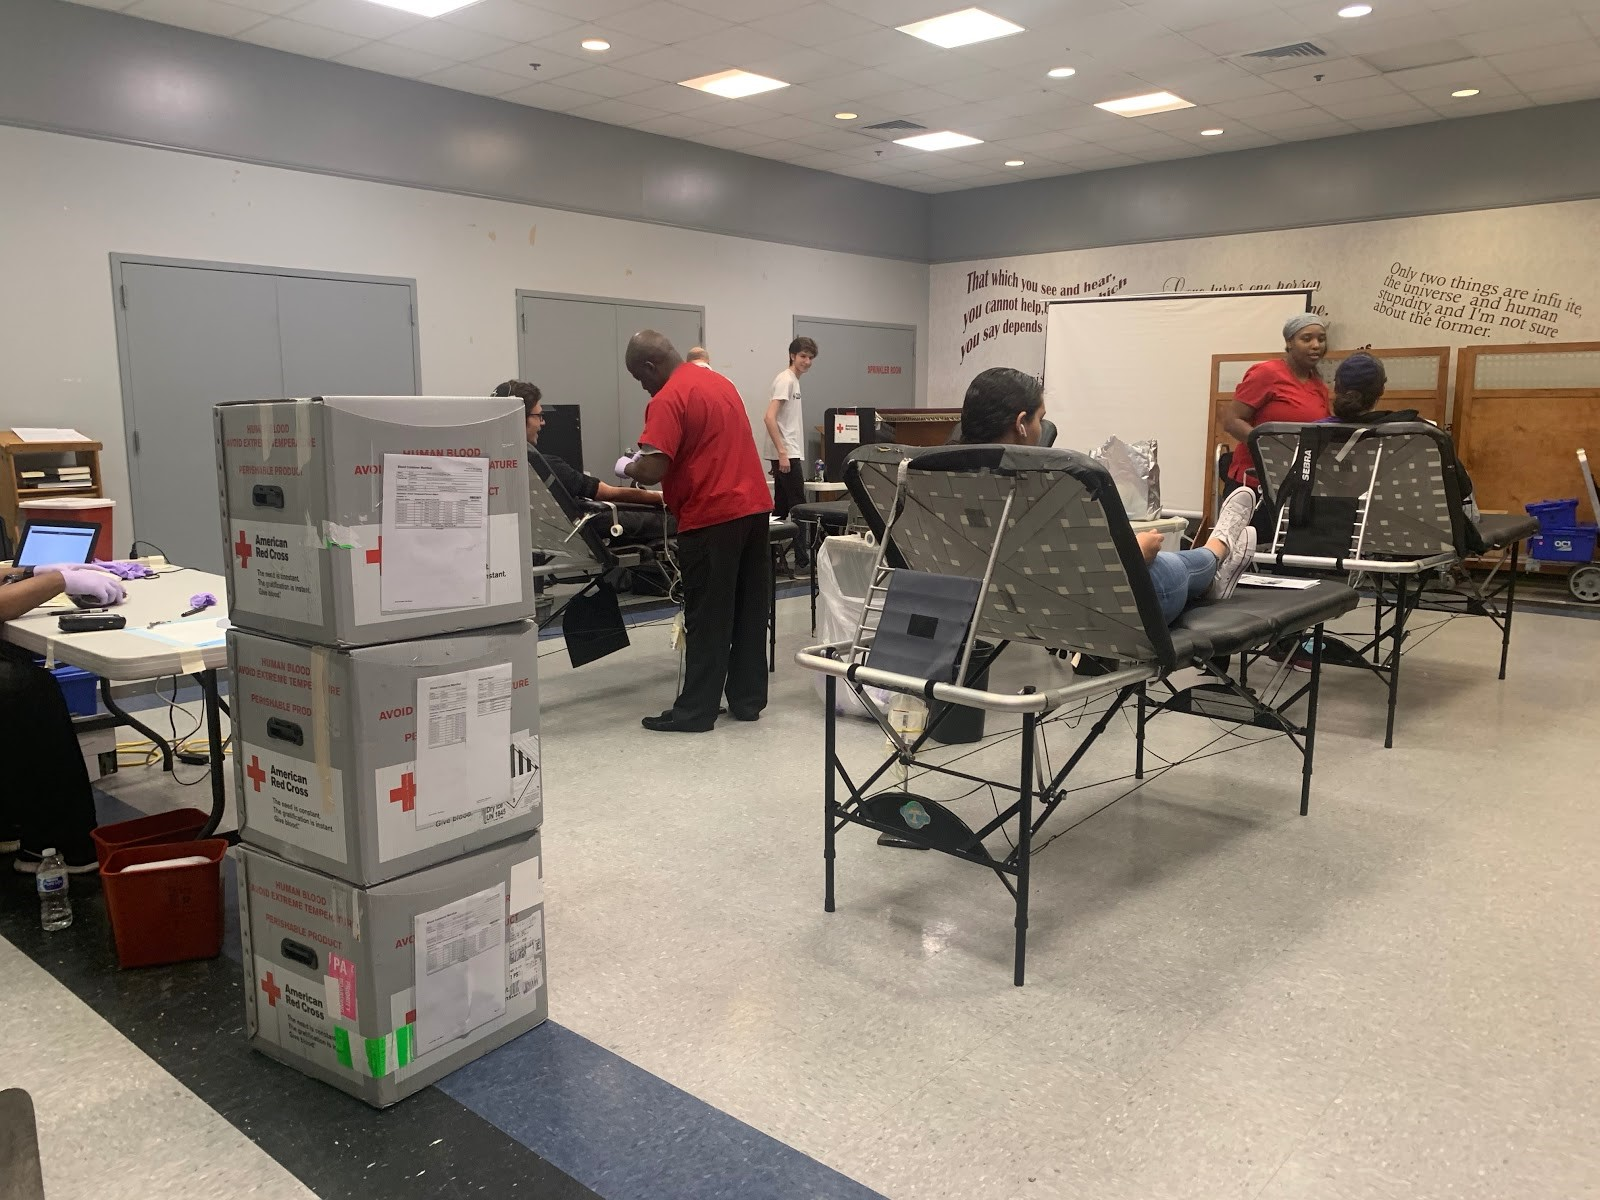 Mitzpeh | Hillel hosts Red Cross blood drive to give back to